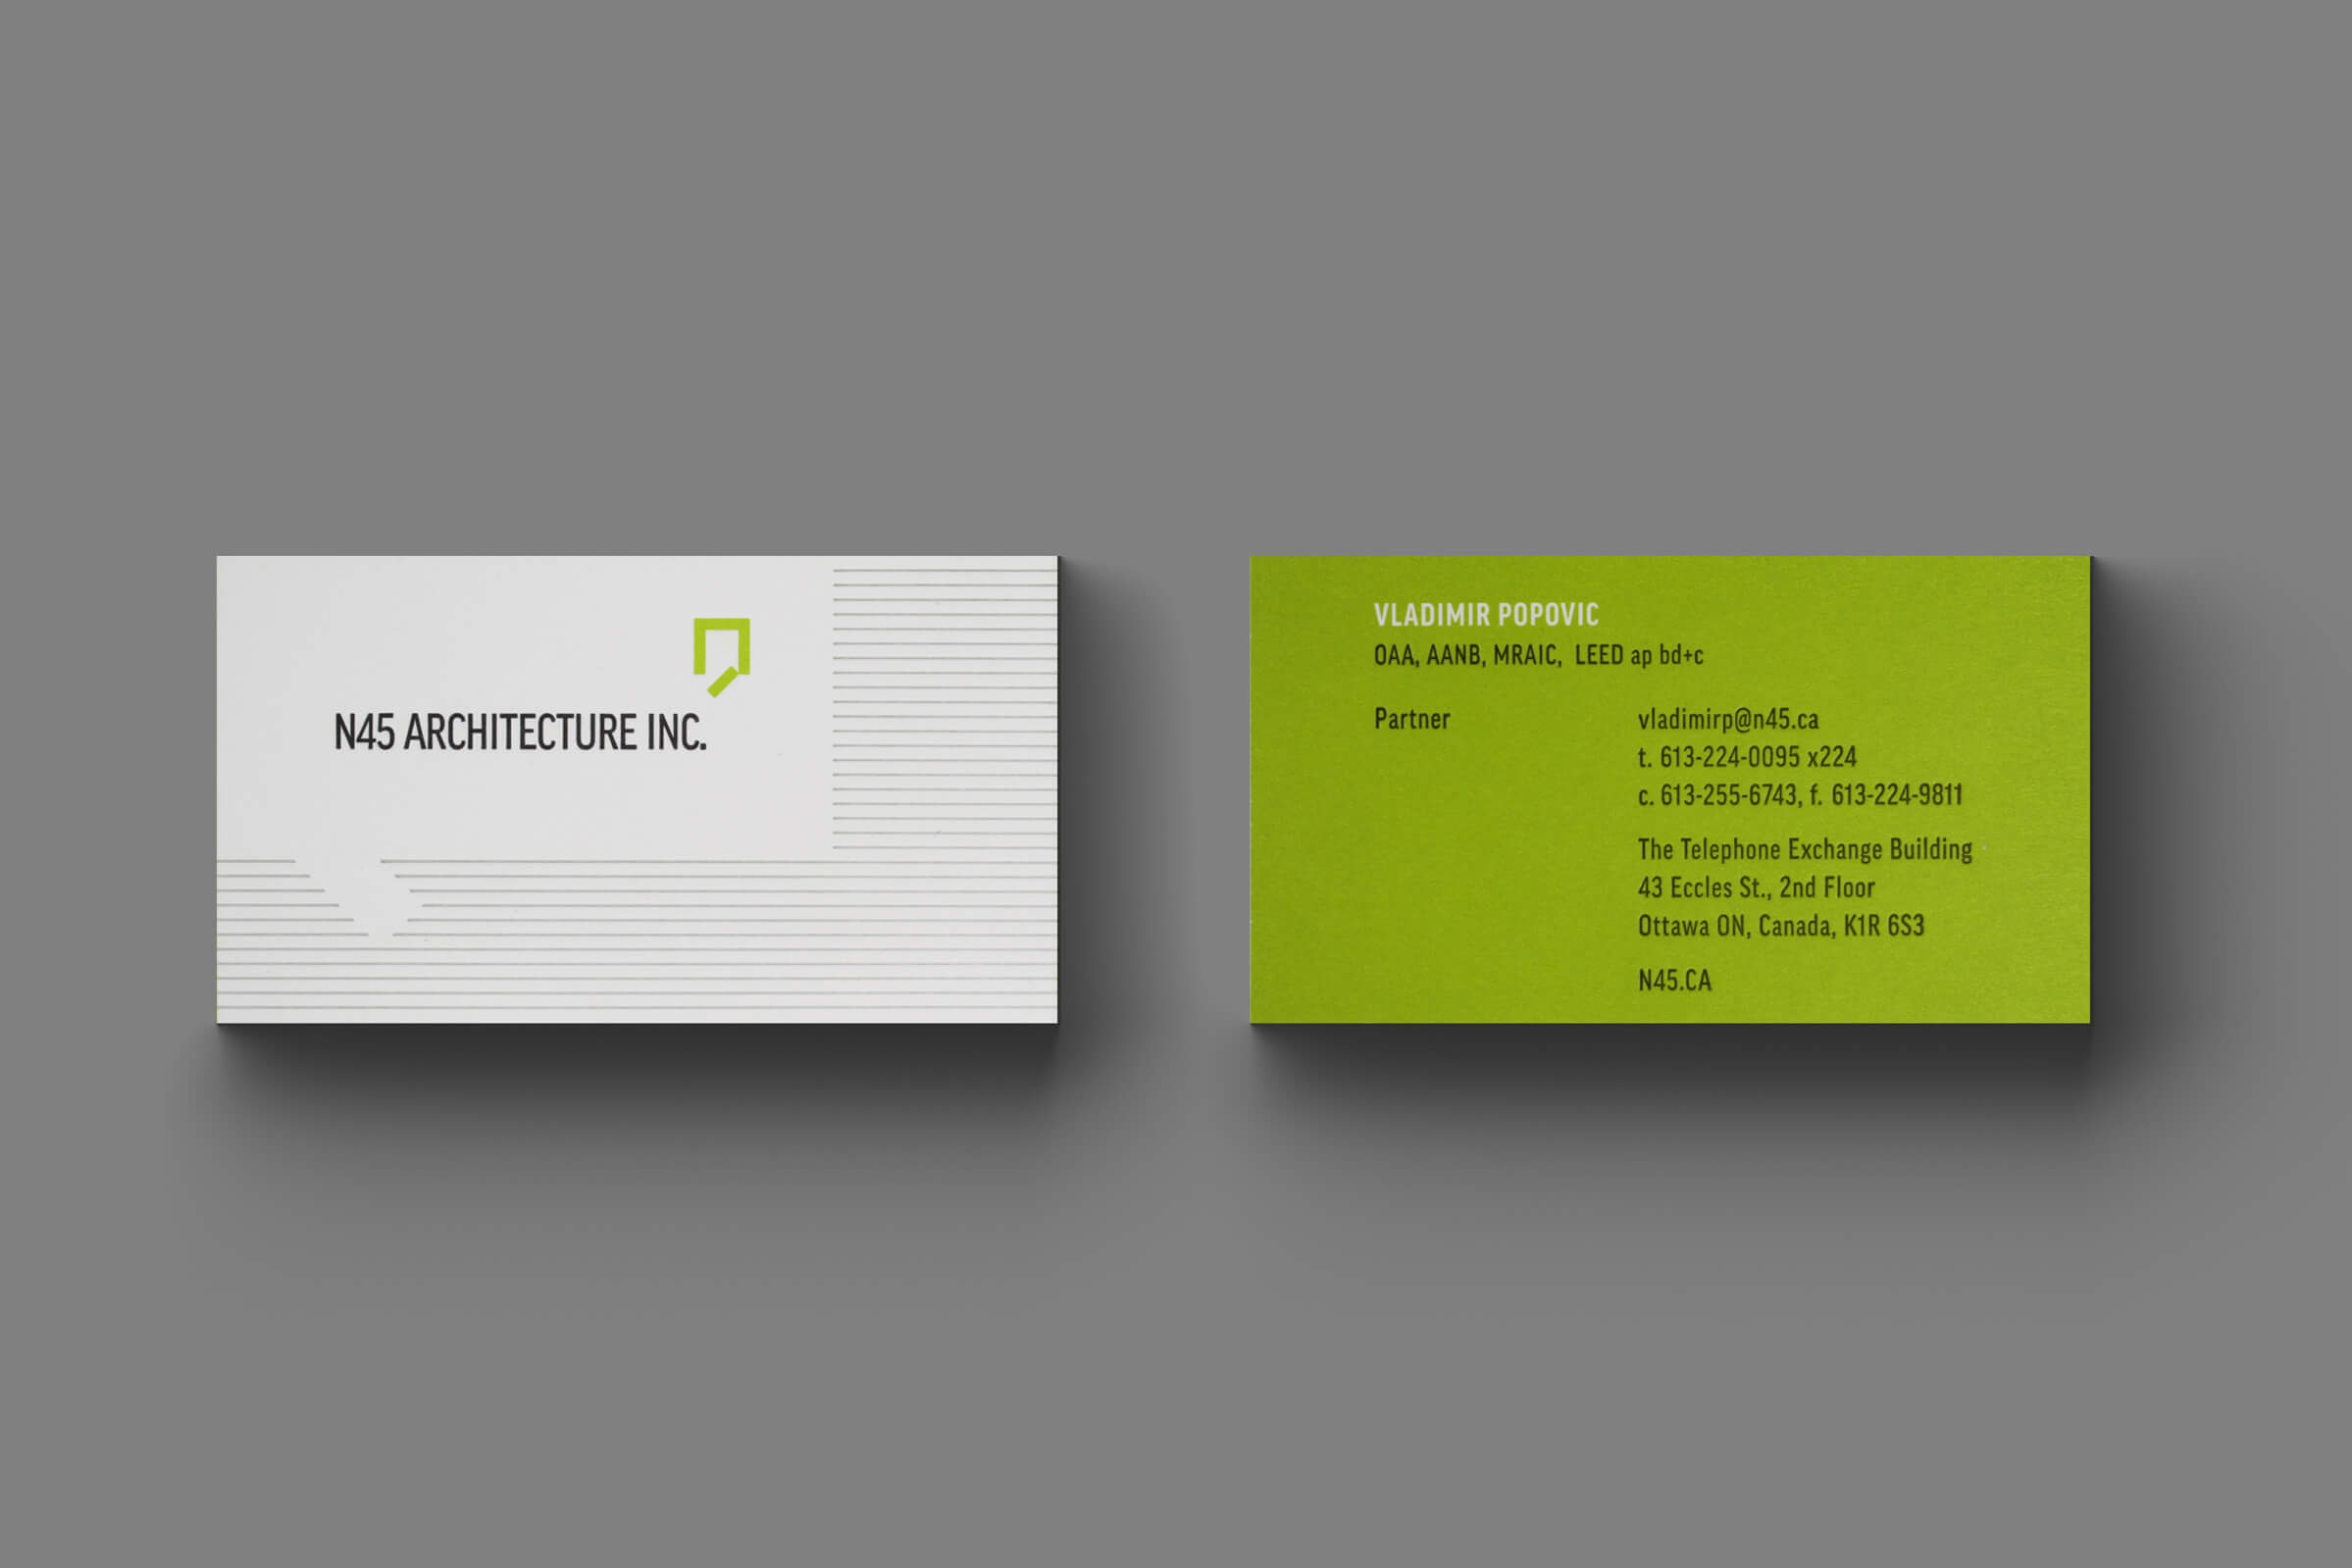 N45 architecture ottawa logo design branding idapostle letterpress business card for n45 architecture inc architects by graphic designer idapostle reheart Gallery